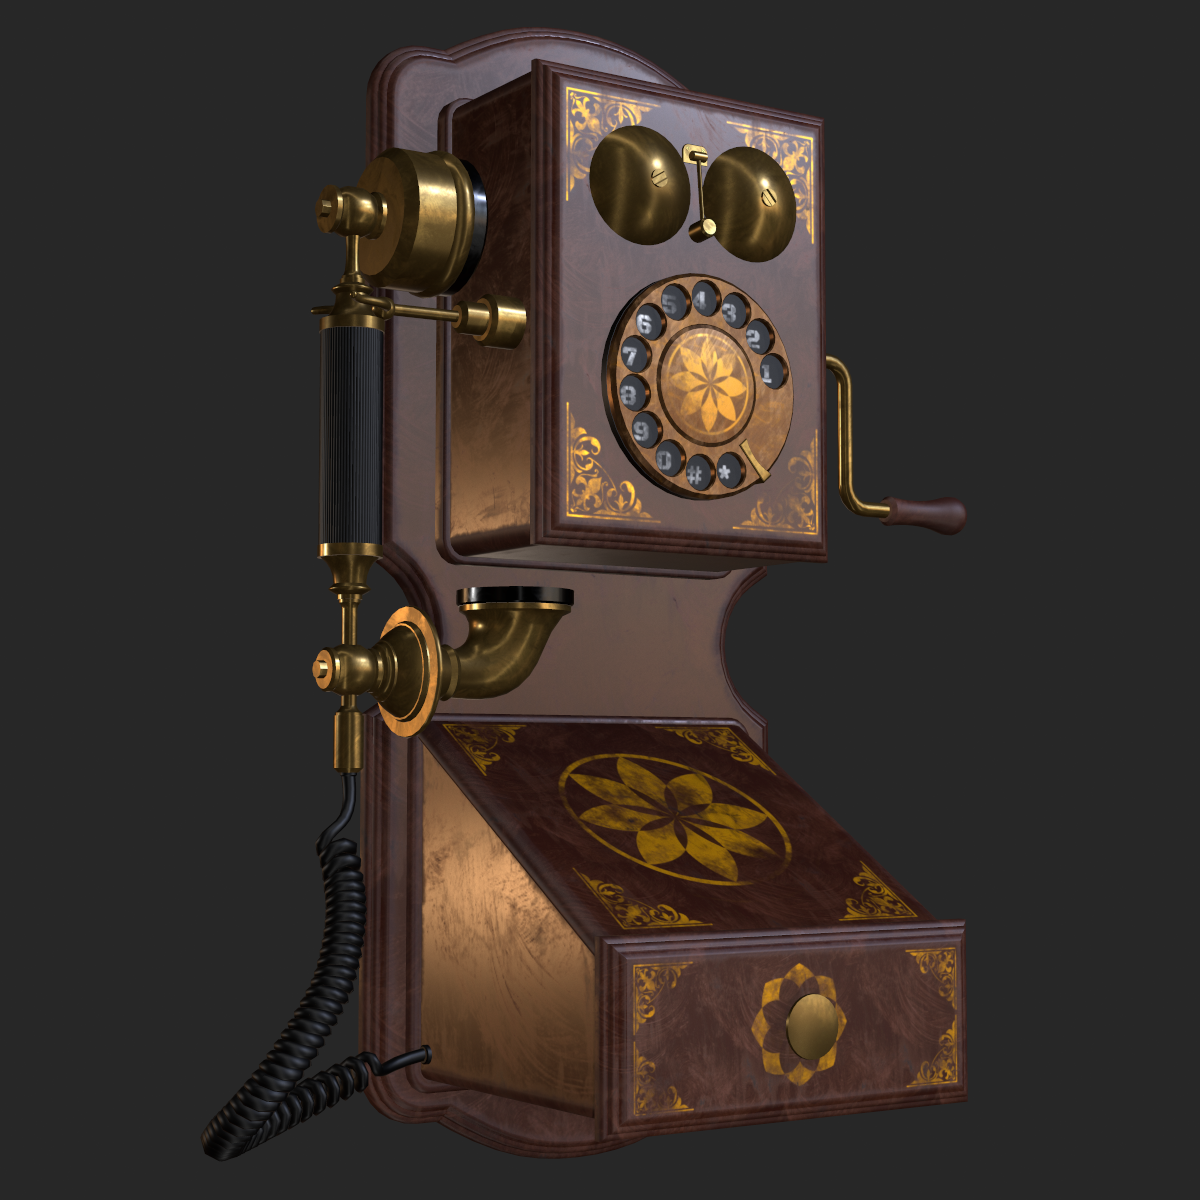 Old Antique Wall Phone Pbr By Movart